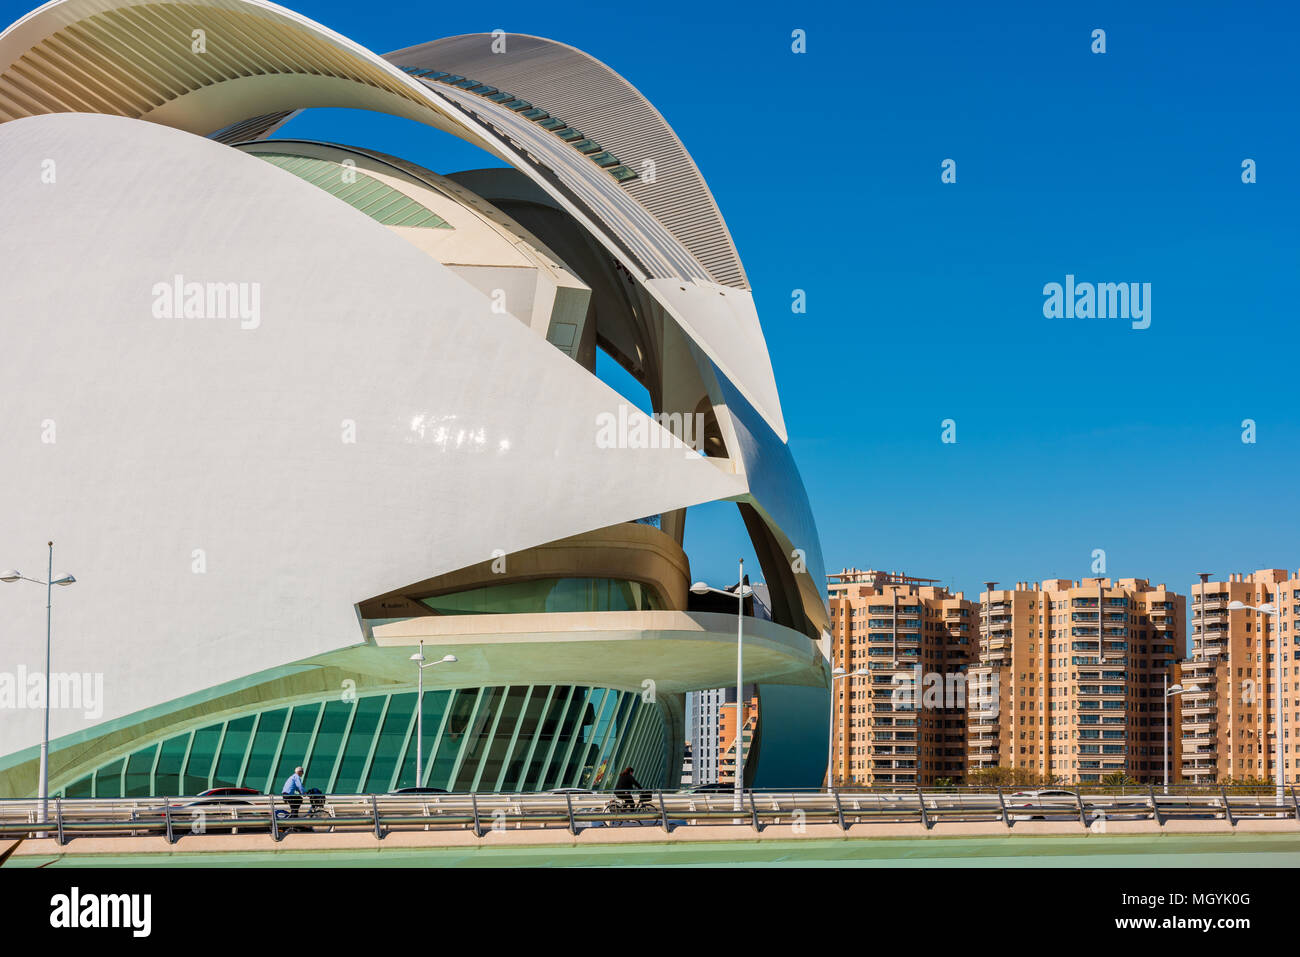 Queen Sofia Palace of the Arts Opera House in Valencia, Spain. It is part of the City of Arts and Sciences complex. - Stock Image